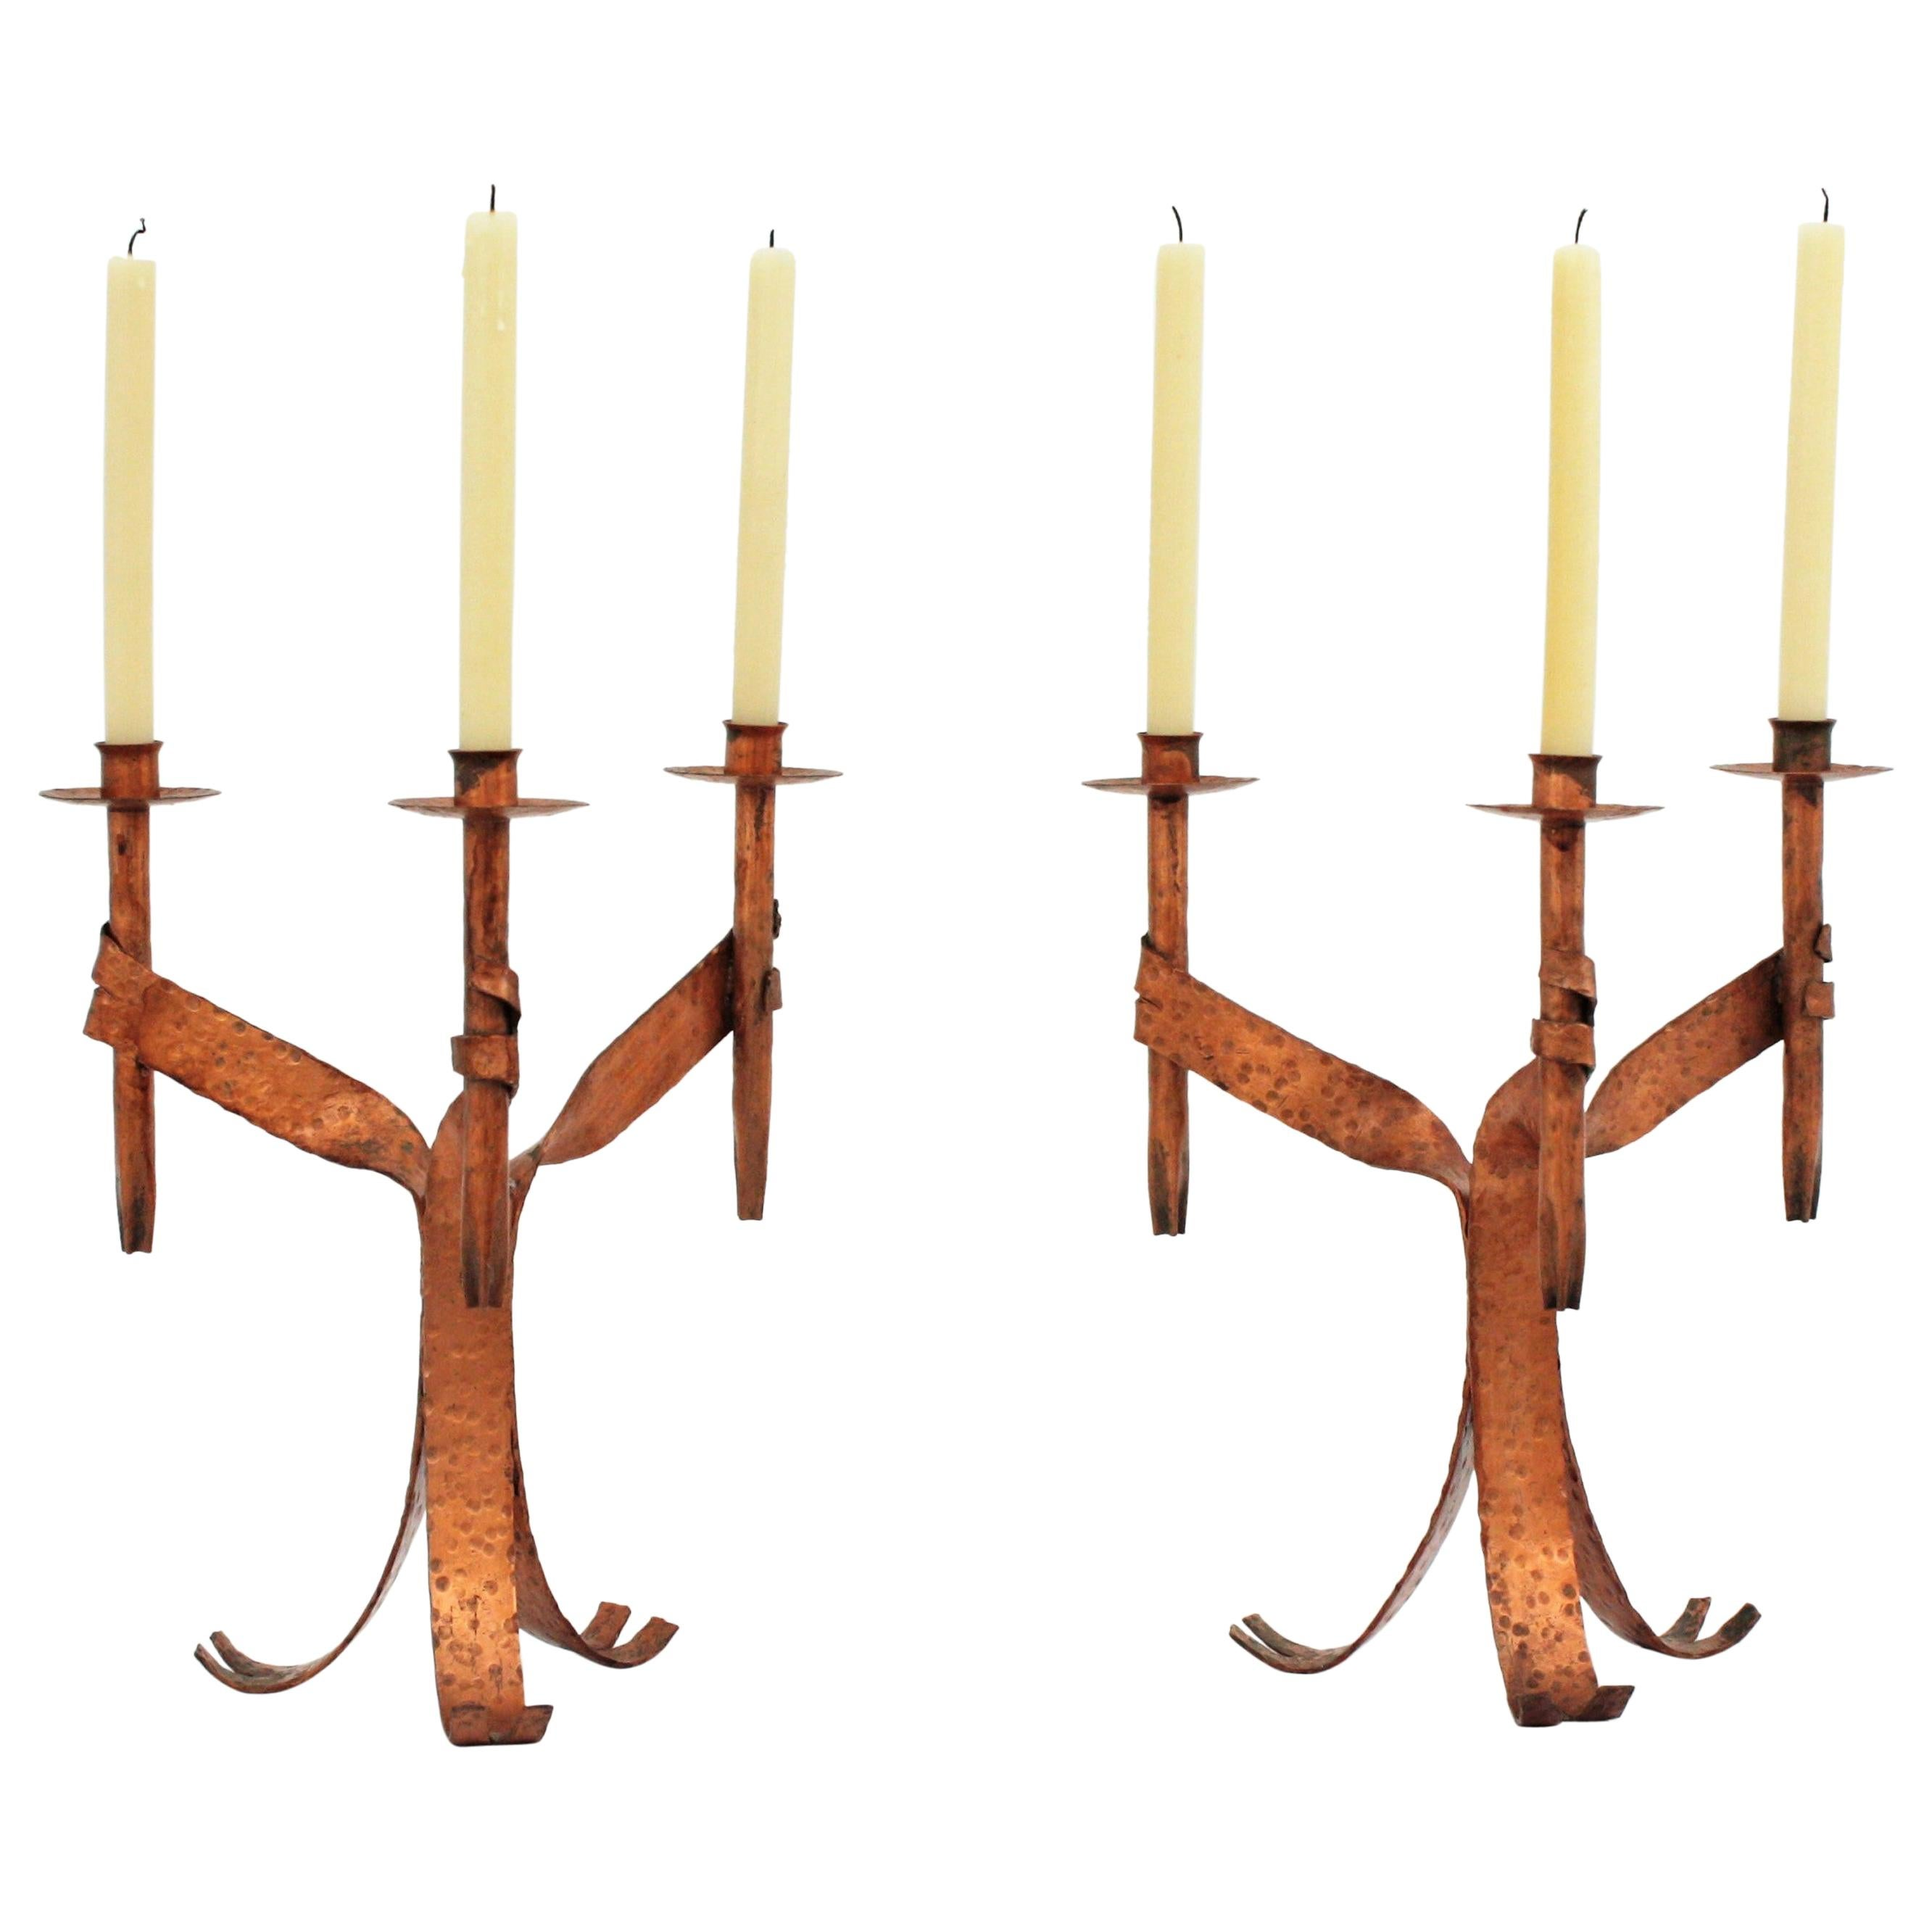 Pair of Gothic Revival Candleholders in Copper Wrought Iron